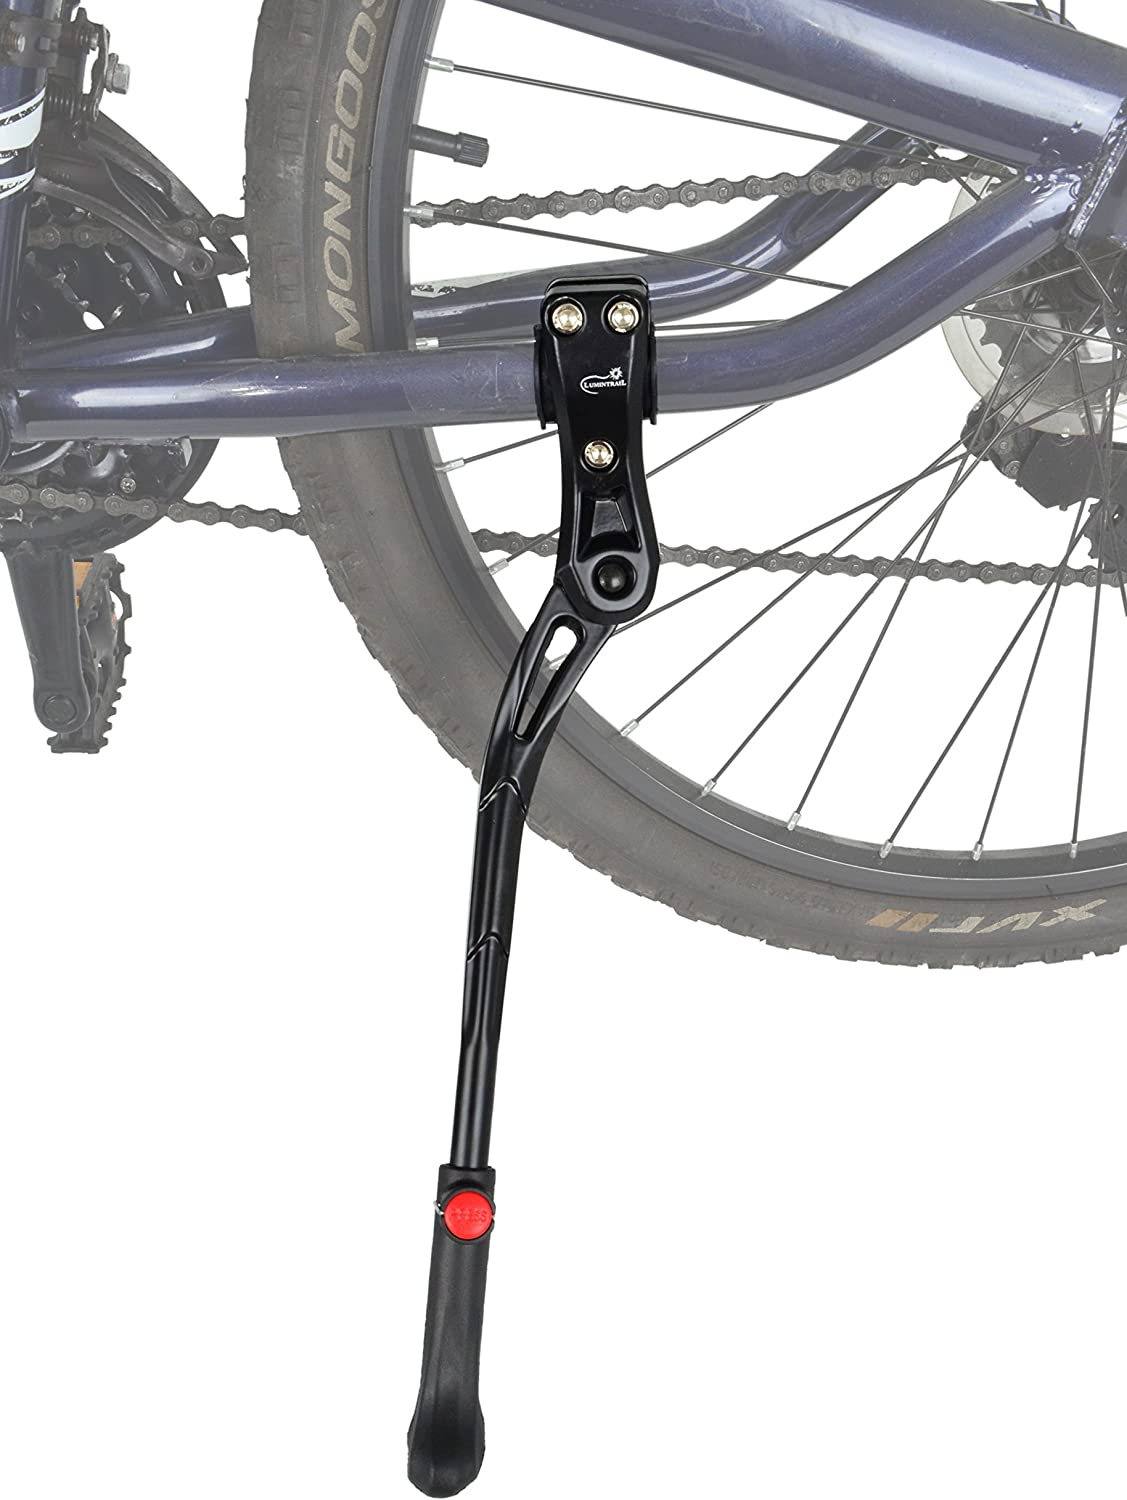 24-28 Inches Bicycle Side Stand Rear Mount Kickstand Bike Stand Holder